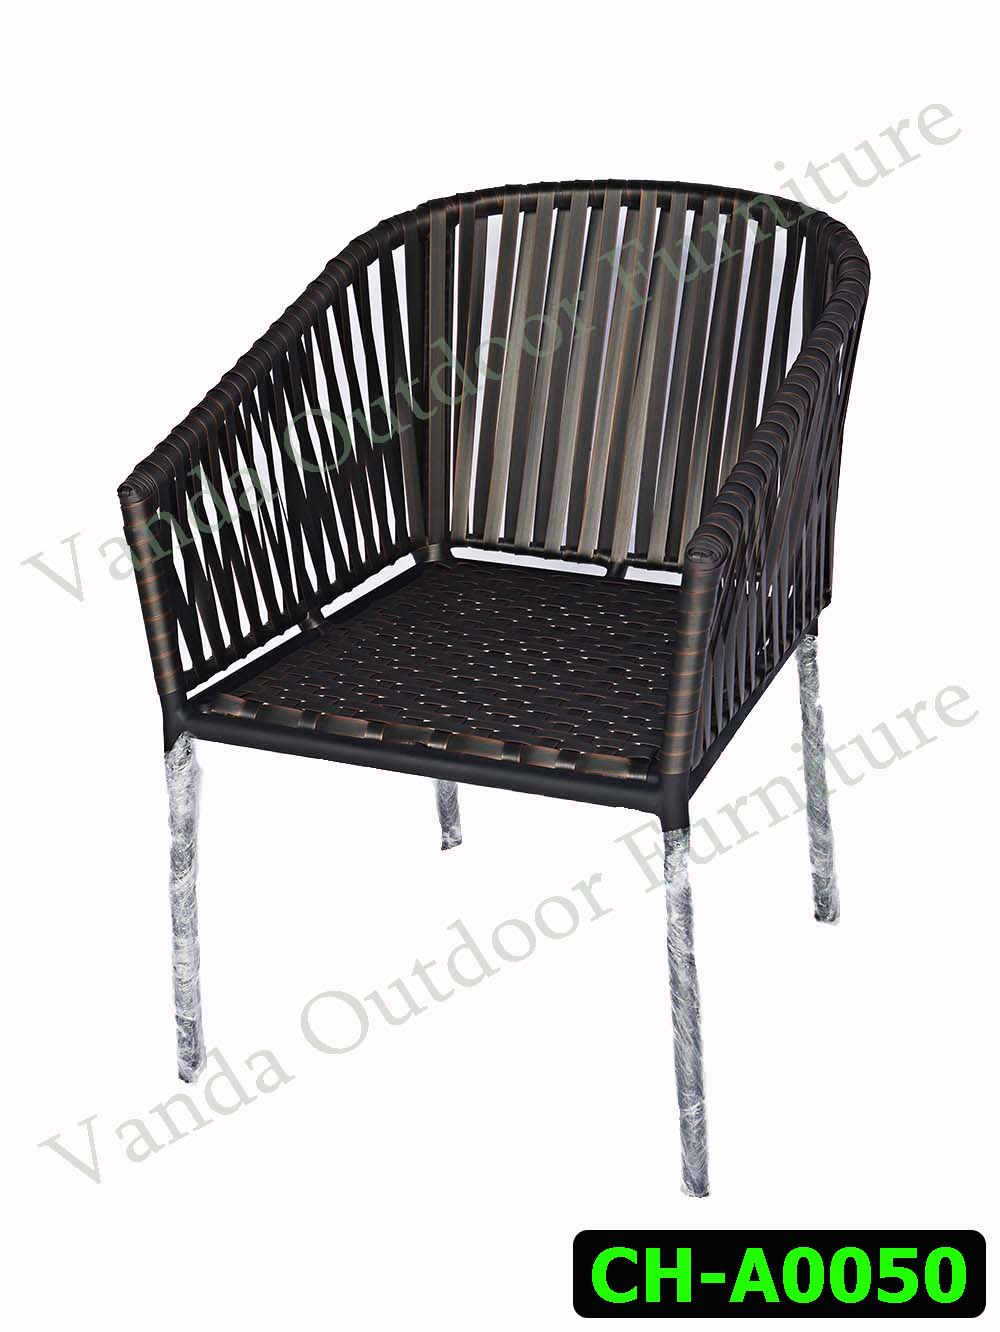 Rattan Chair Product code CH-A0050